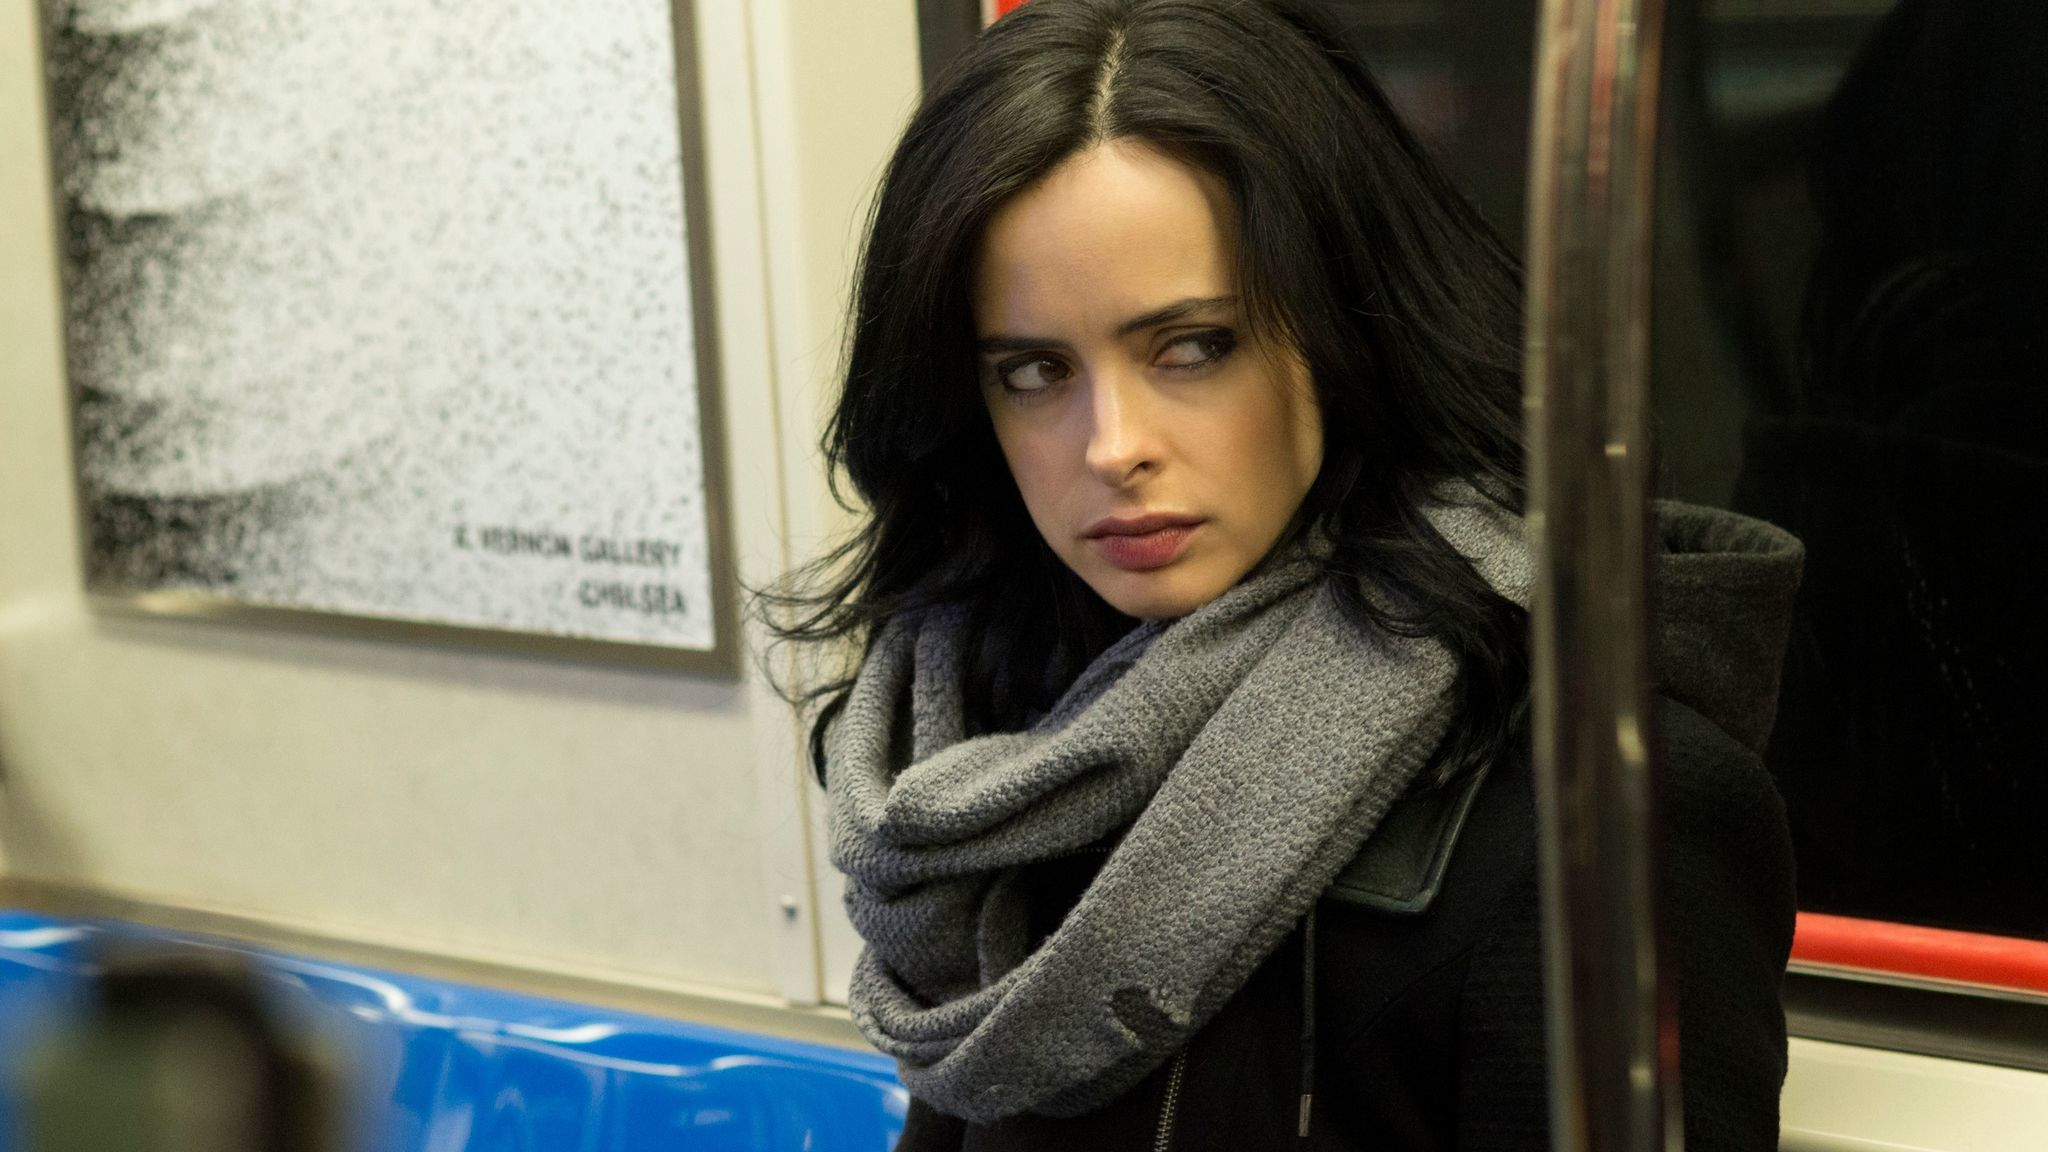 Krysten Ritter as Jessica Jones in